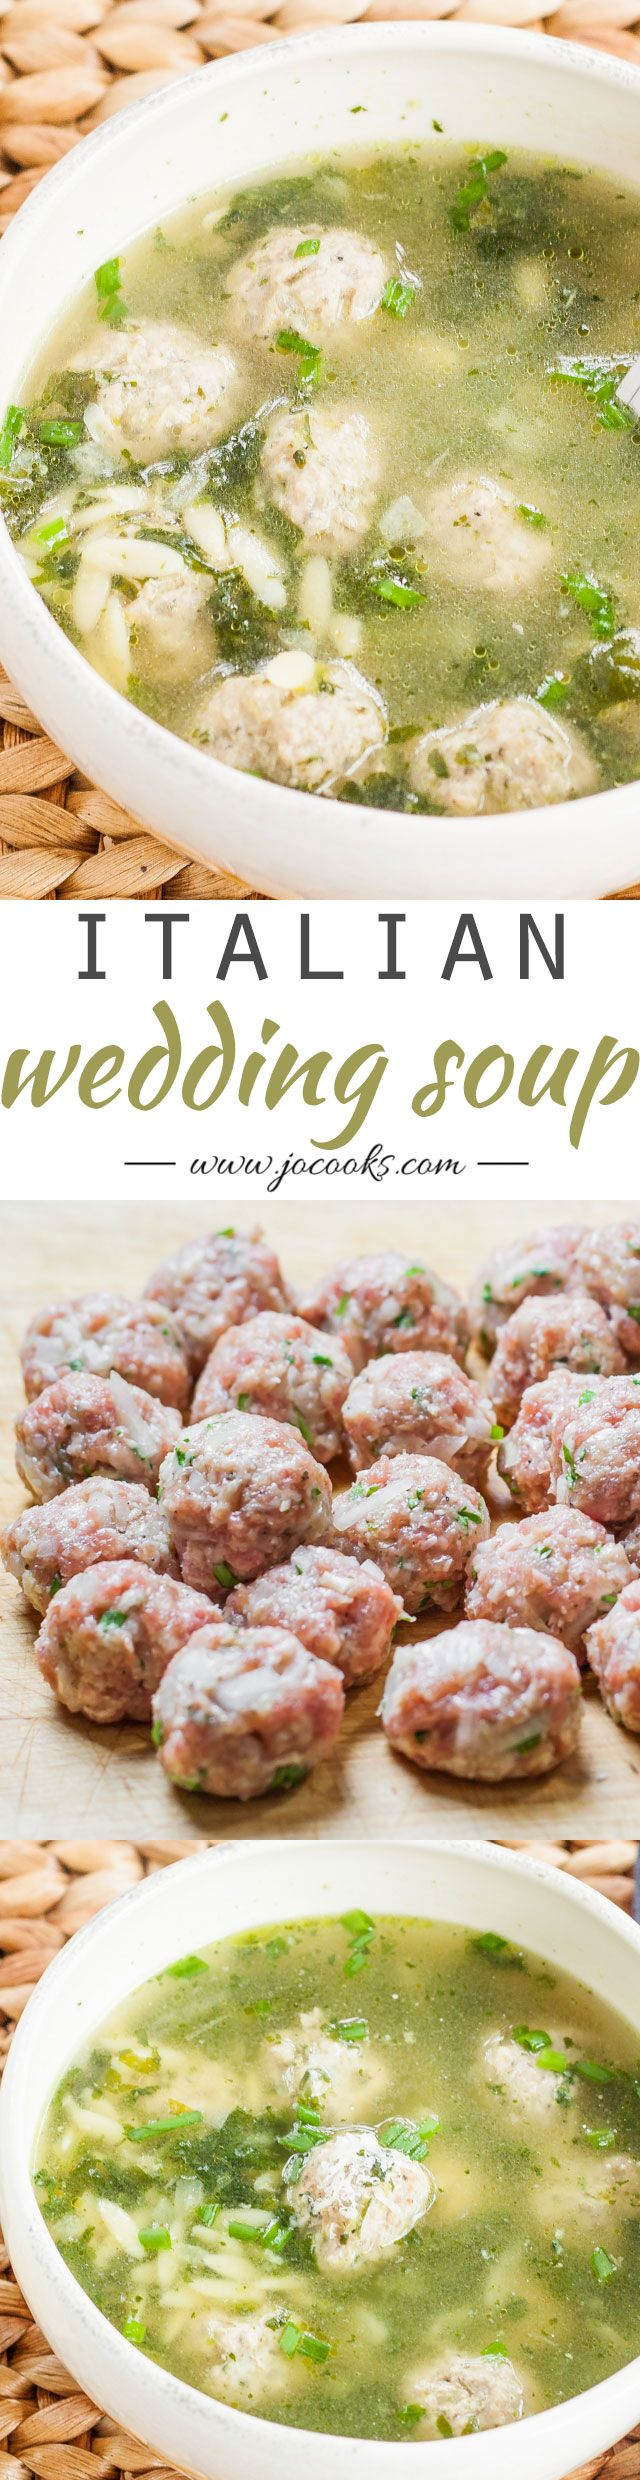 Italian Wedding Soup. This is the closest recipe to my Aunt Rose's. Wish she was still here to teach me hers.